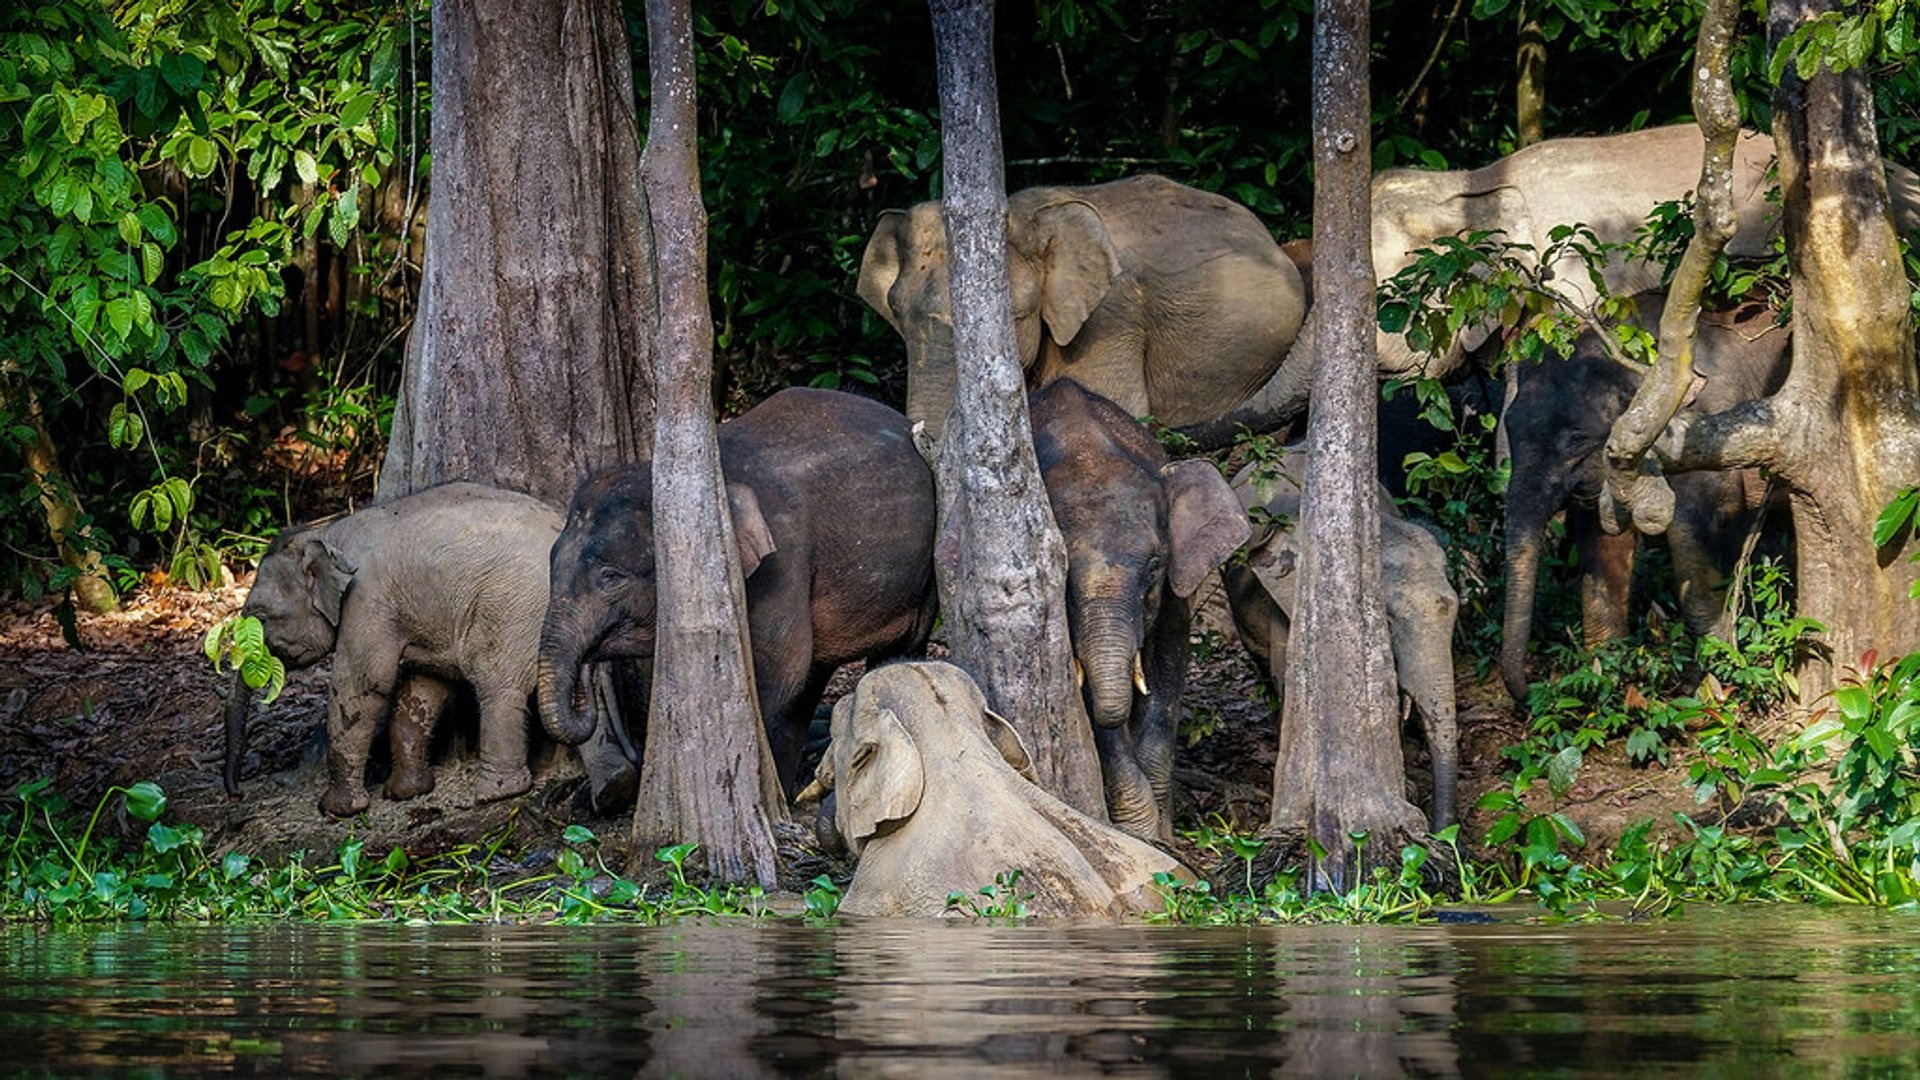 A whole family was coming for a refreshment to the Kinabatangan river. 2020